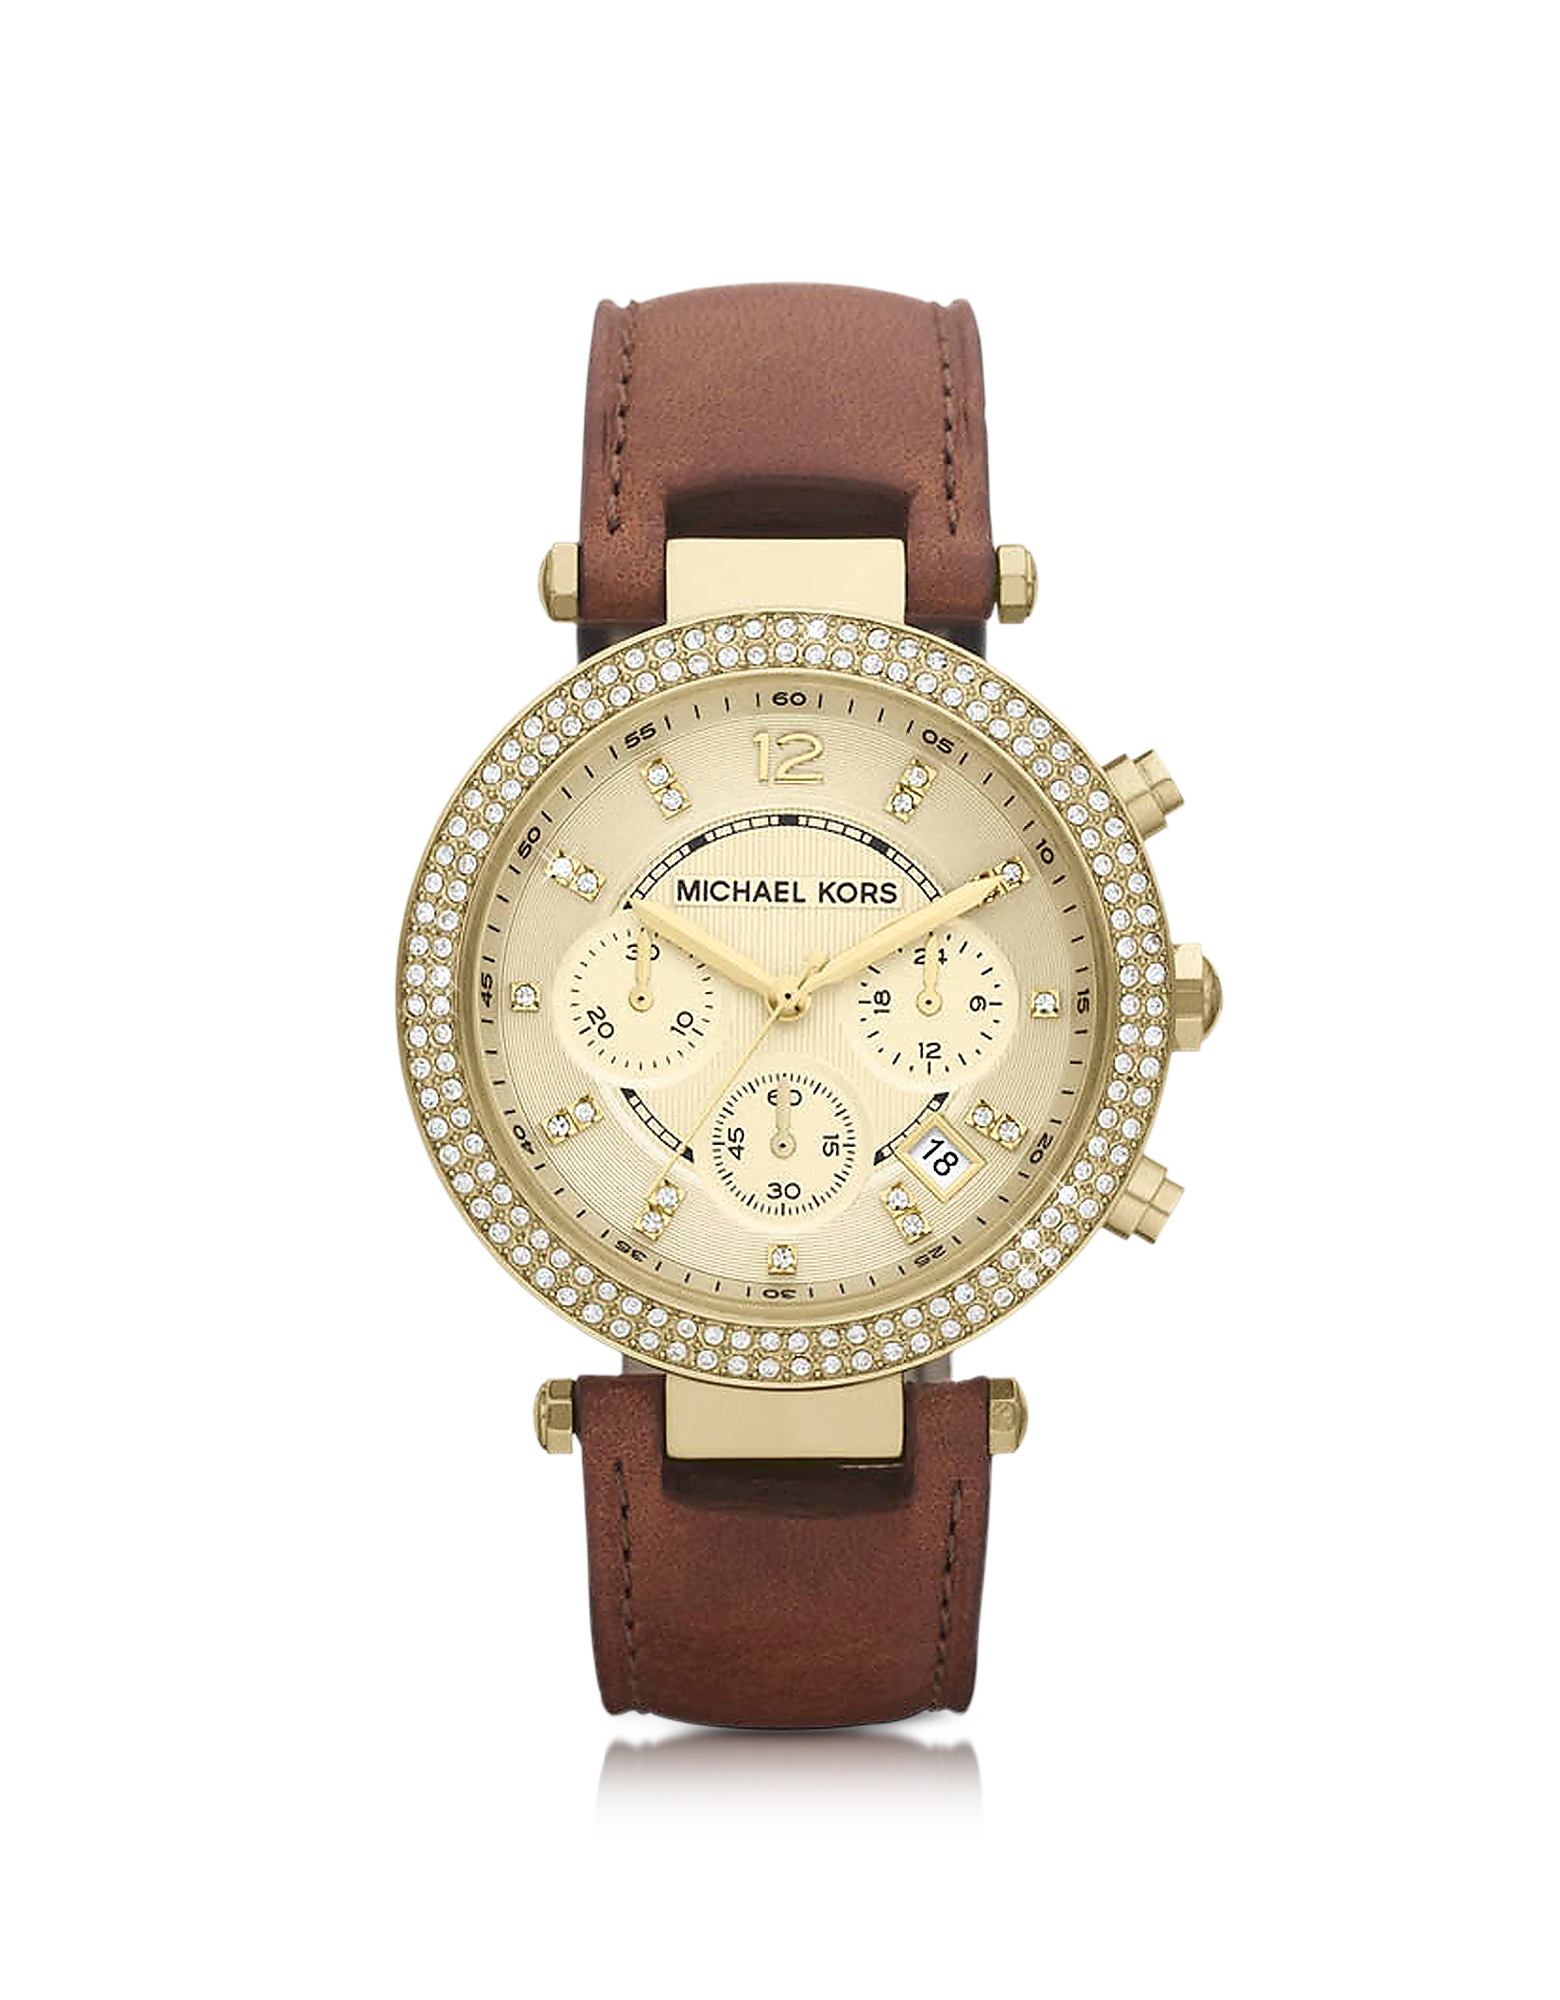 Michael Kors Women's Watches, Mid-Size Parker Chronograph Glitz Watch